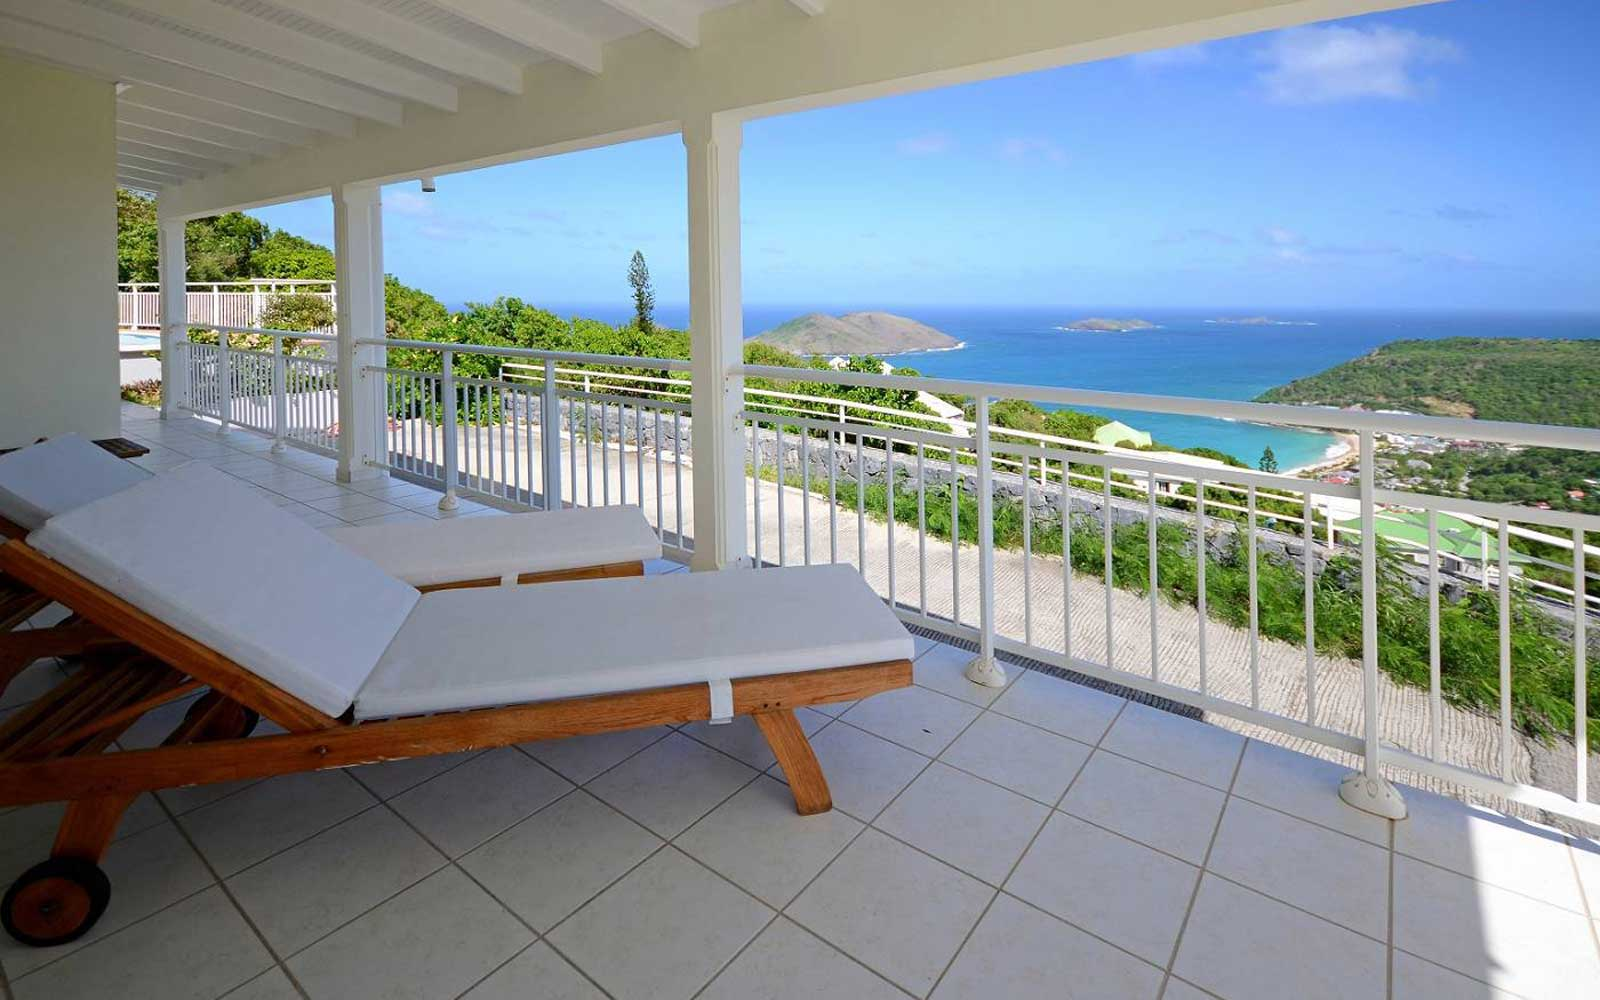 Stay at this Villa on St. Bart's for Only $2,100 Per Week